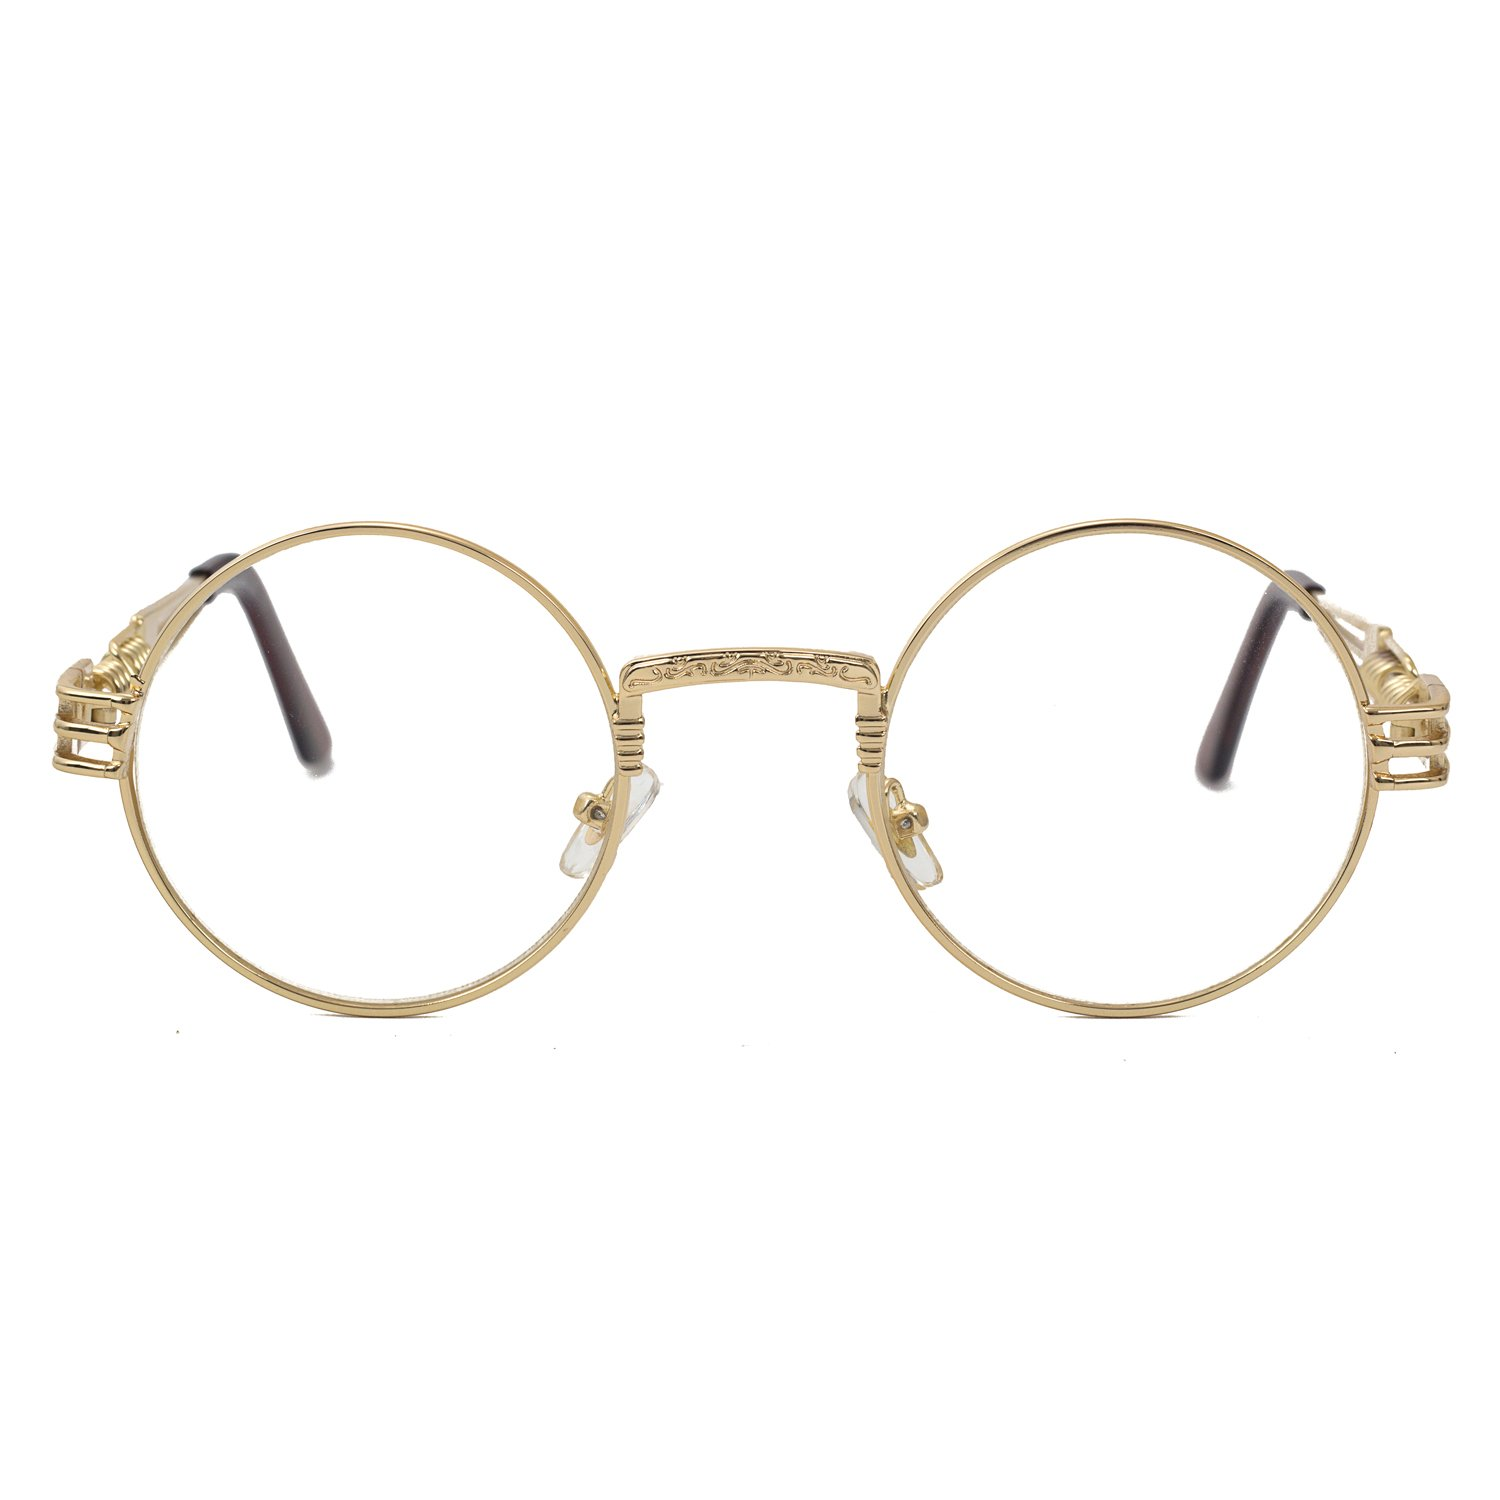 Pro Acme John Lennon Metal Spring Frame Round Steampunk Clear Lens Glasses (Gold Frame/Clear Lens) by Pro Acme (Image #3)